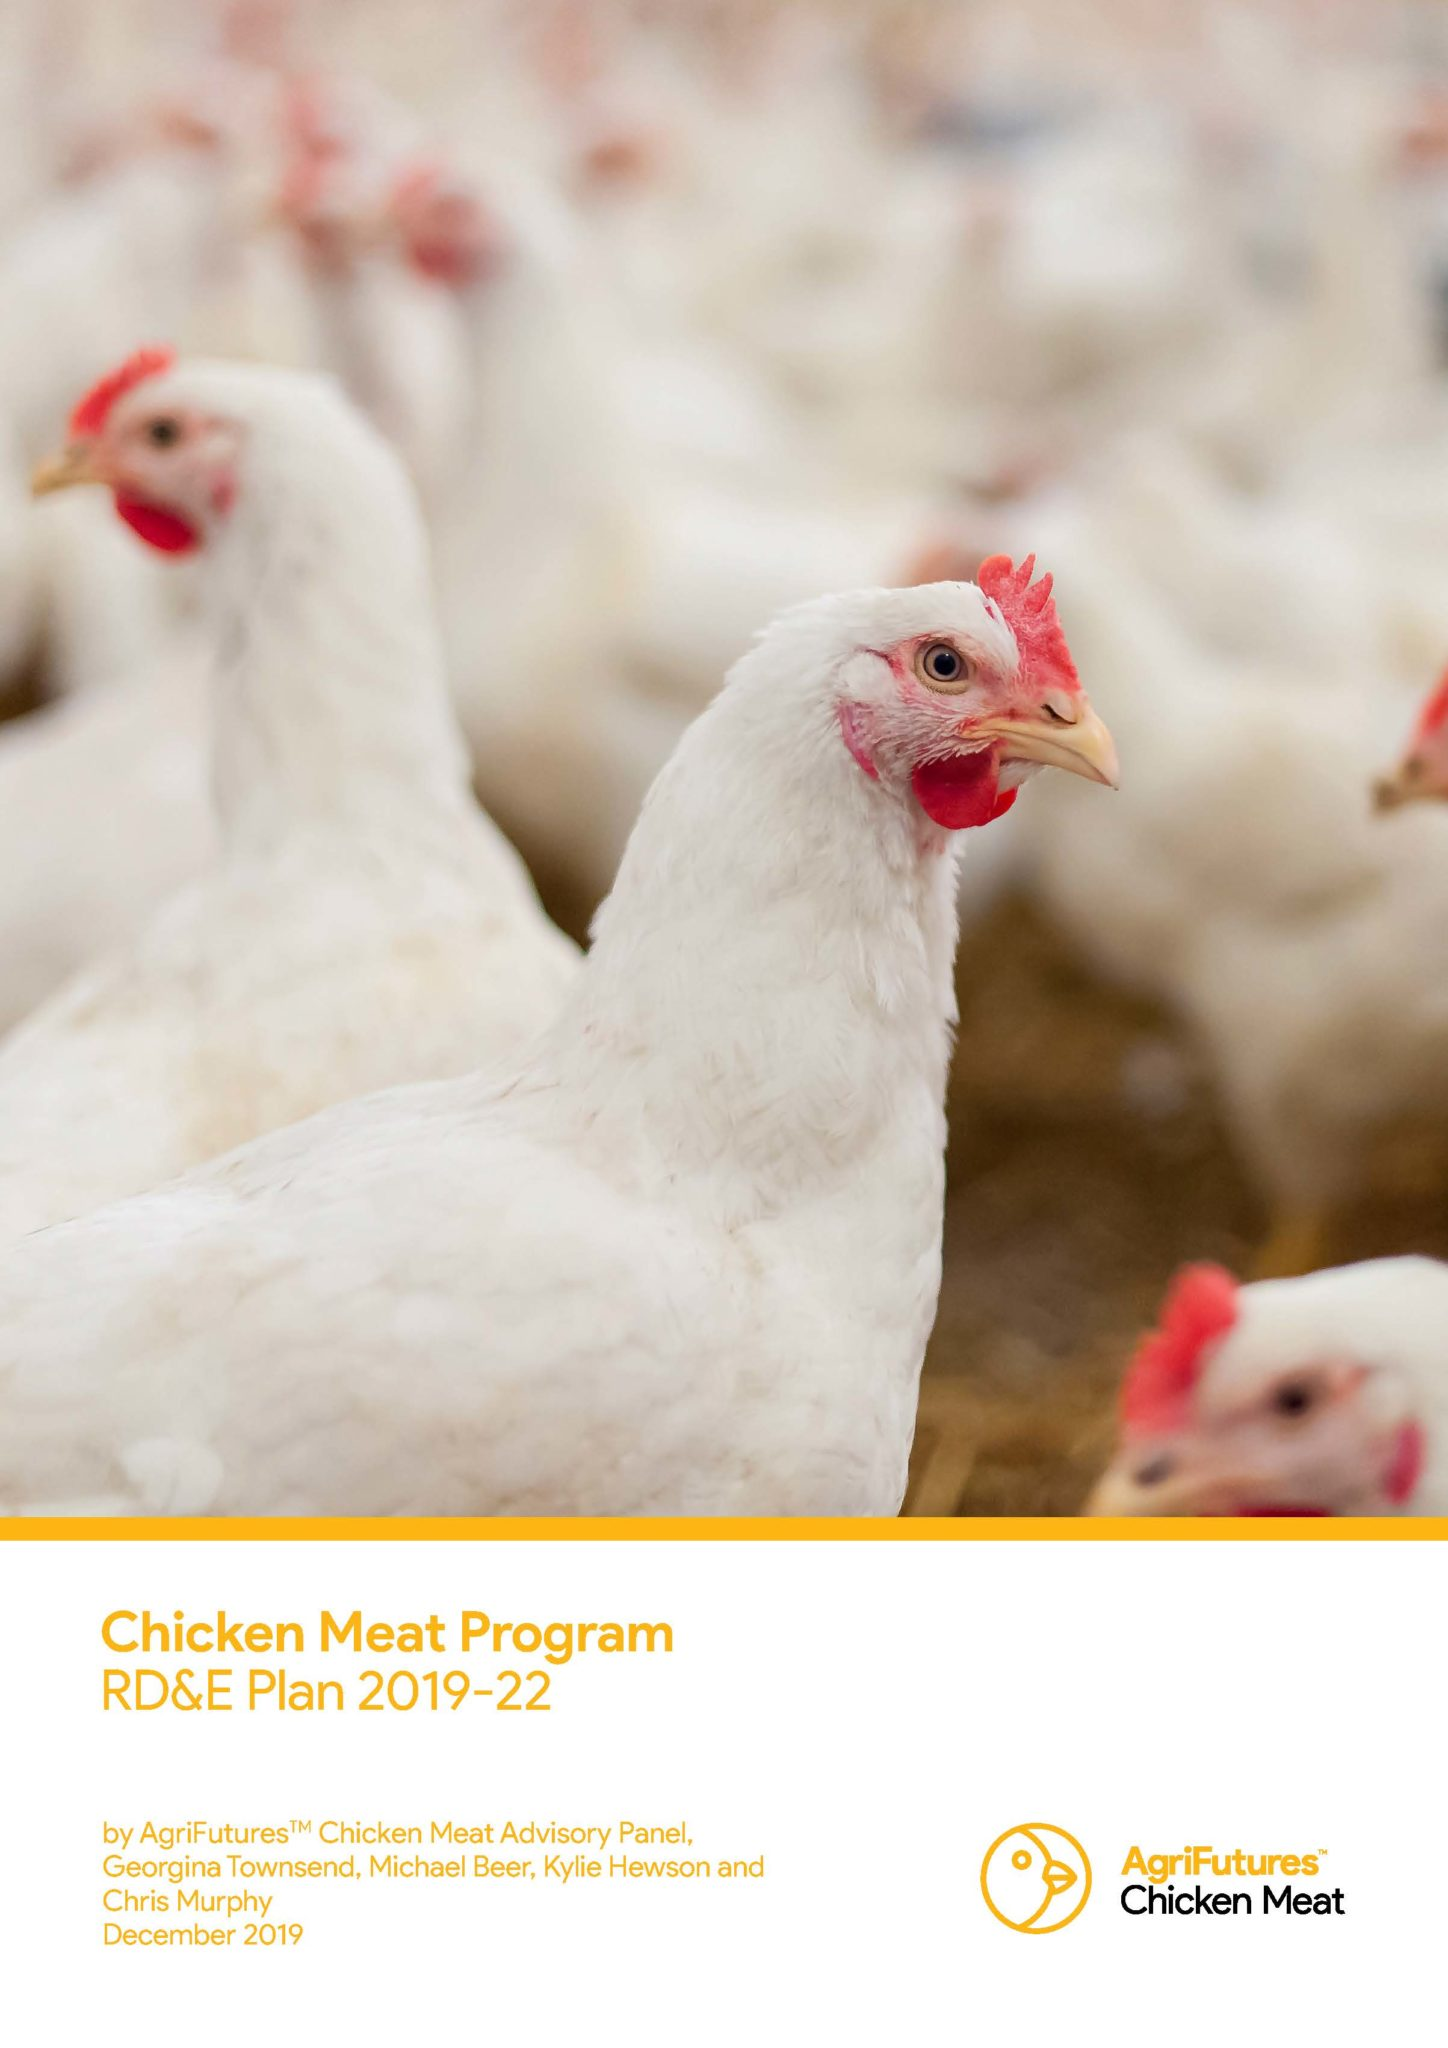 AgriFuturesTM Chicken Meat Program RD&E Plan 2019-22 - image